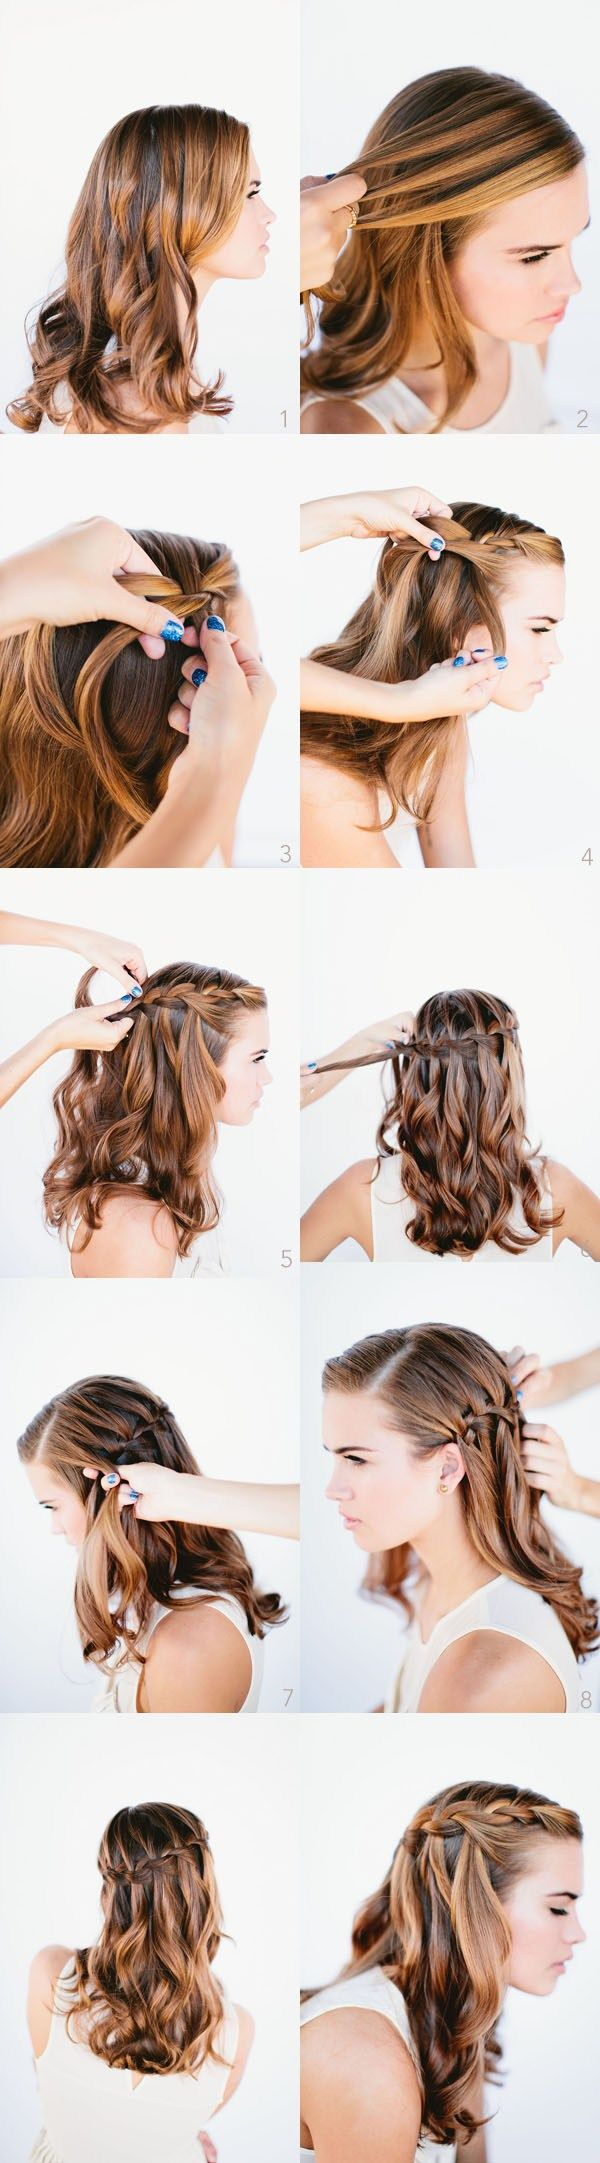 WATERFALL BRAID HAIRSTYLE | 12 Braided Hairstyles You Should Try To Do | http://www.jexshop.com/